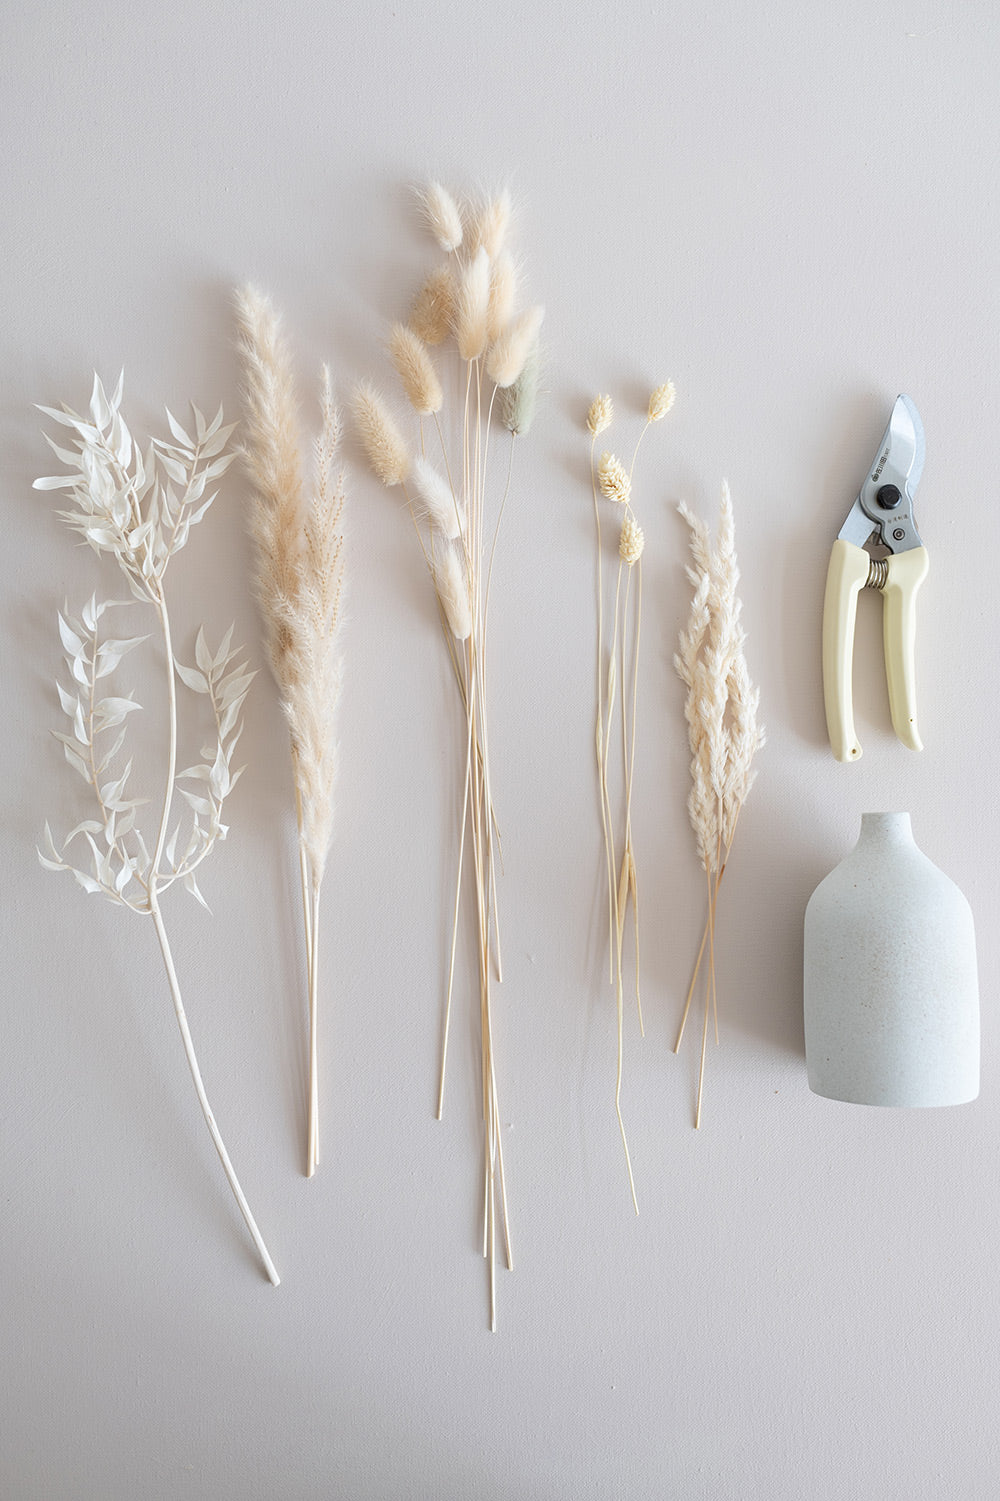 Assorted cream colour dried florals and grasses laid flat beside a pair of cream pruners and a white bud vase.